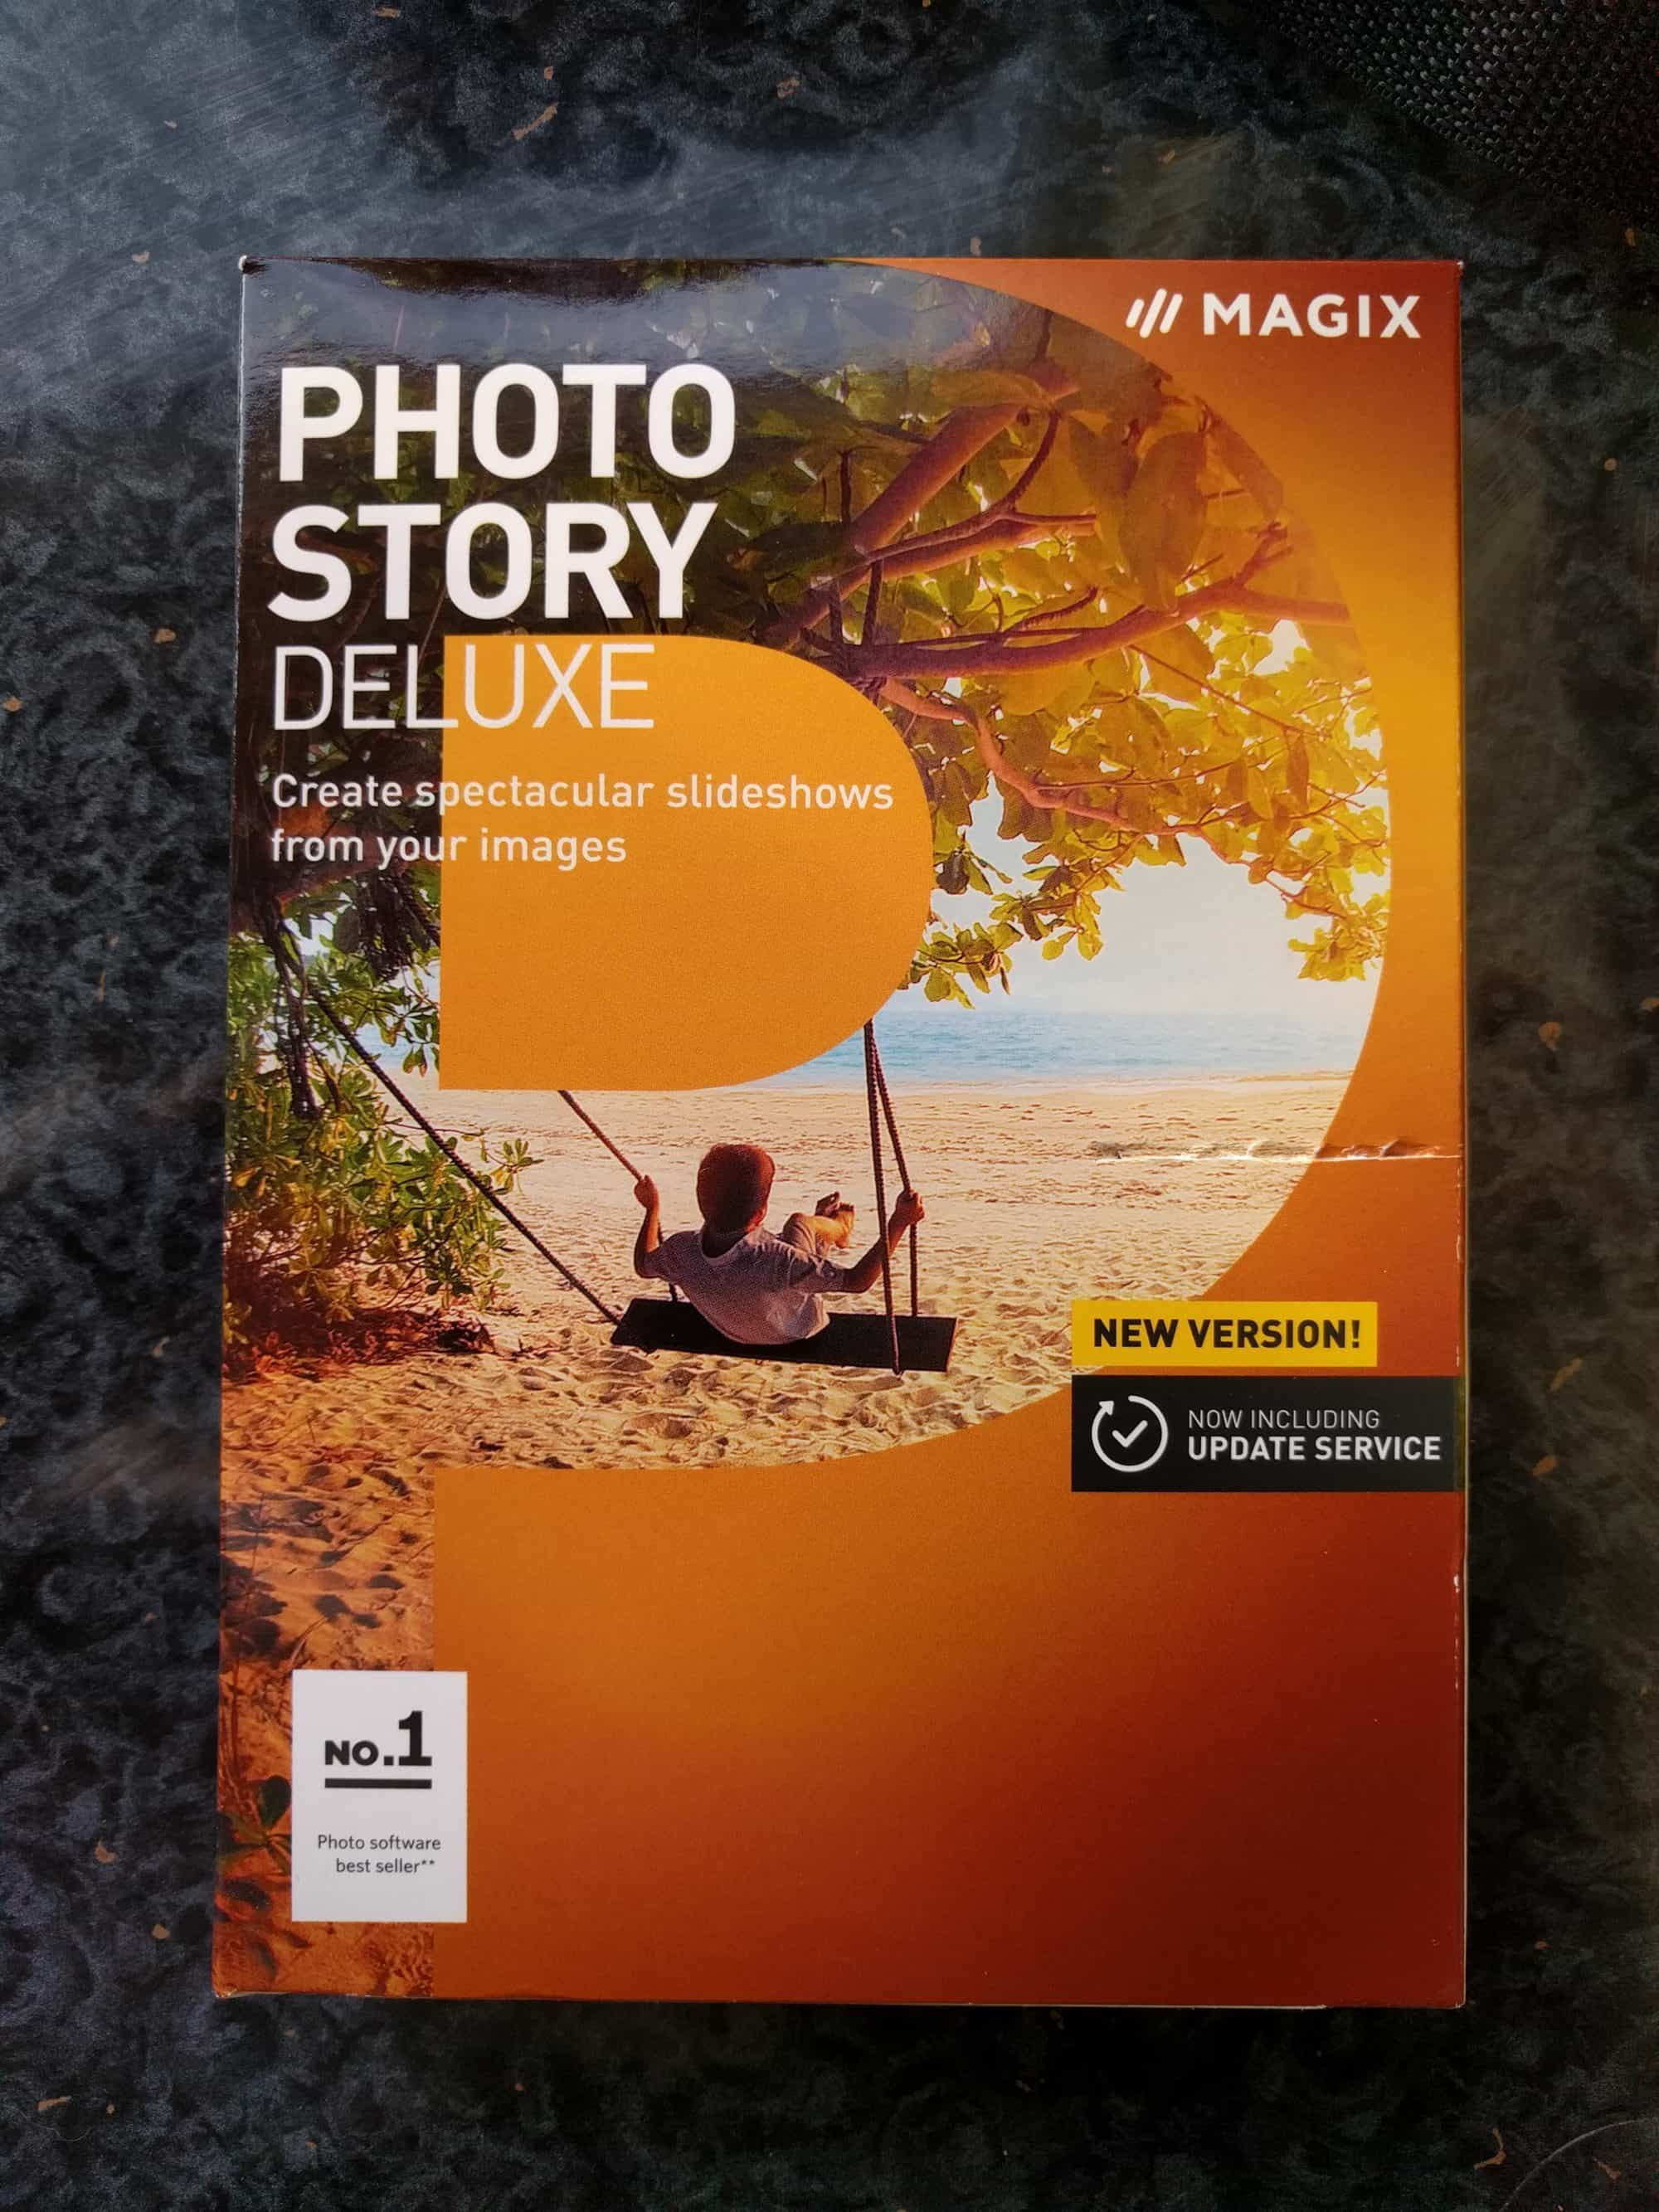 MAGIX Photostory Review & Competition - Any Way To Stay At Home